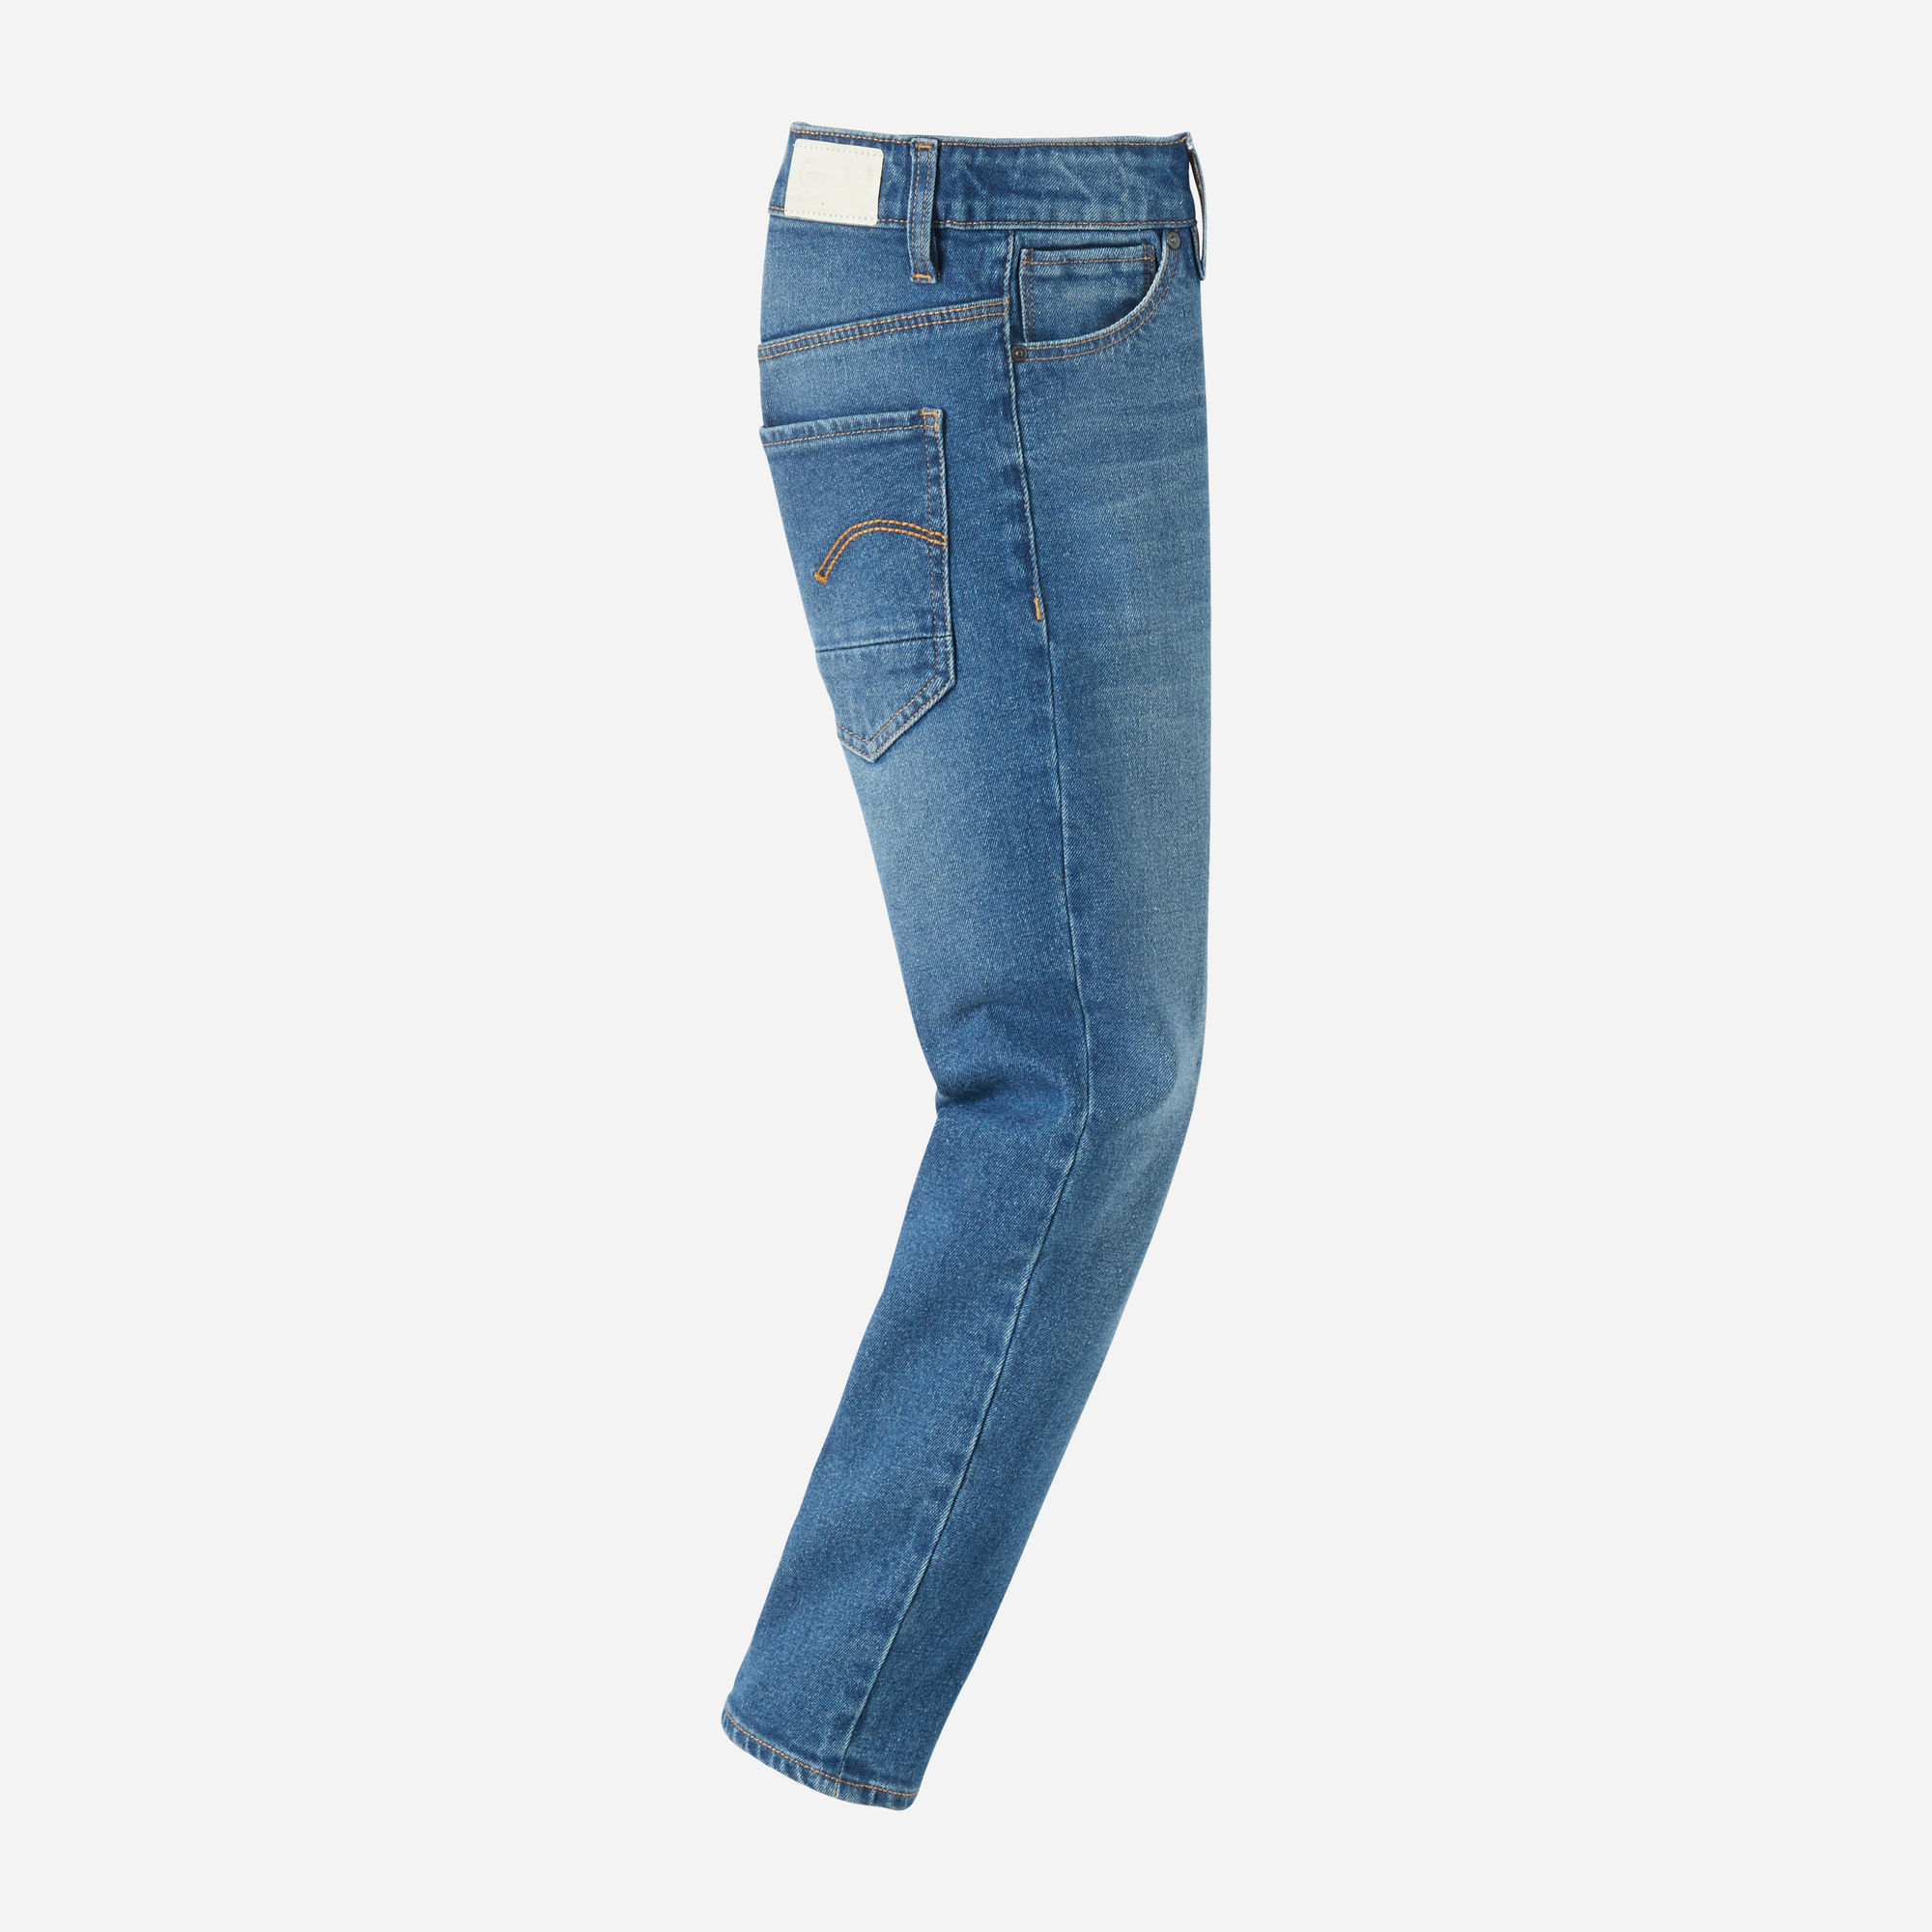 G-Star RAW Arc Boyfriend Jeans